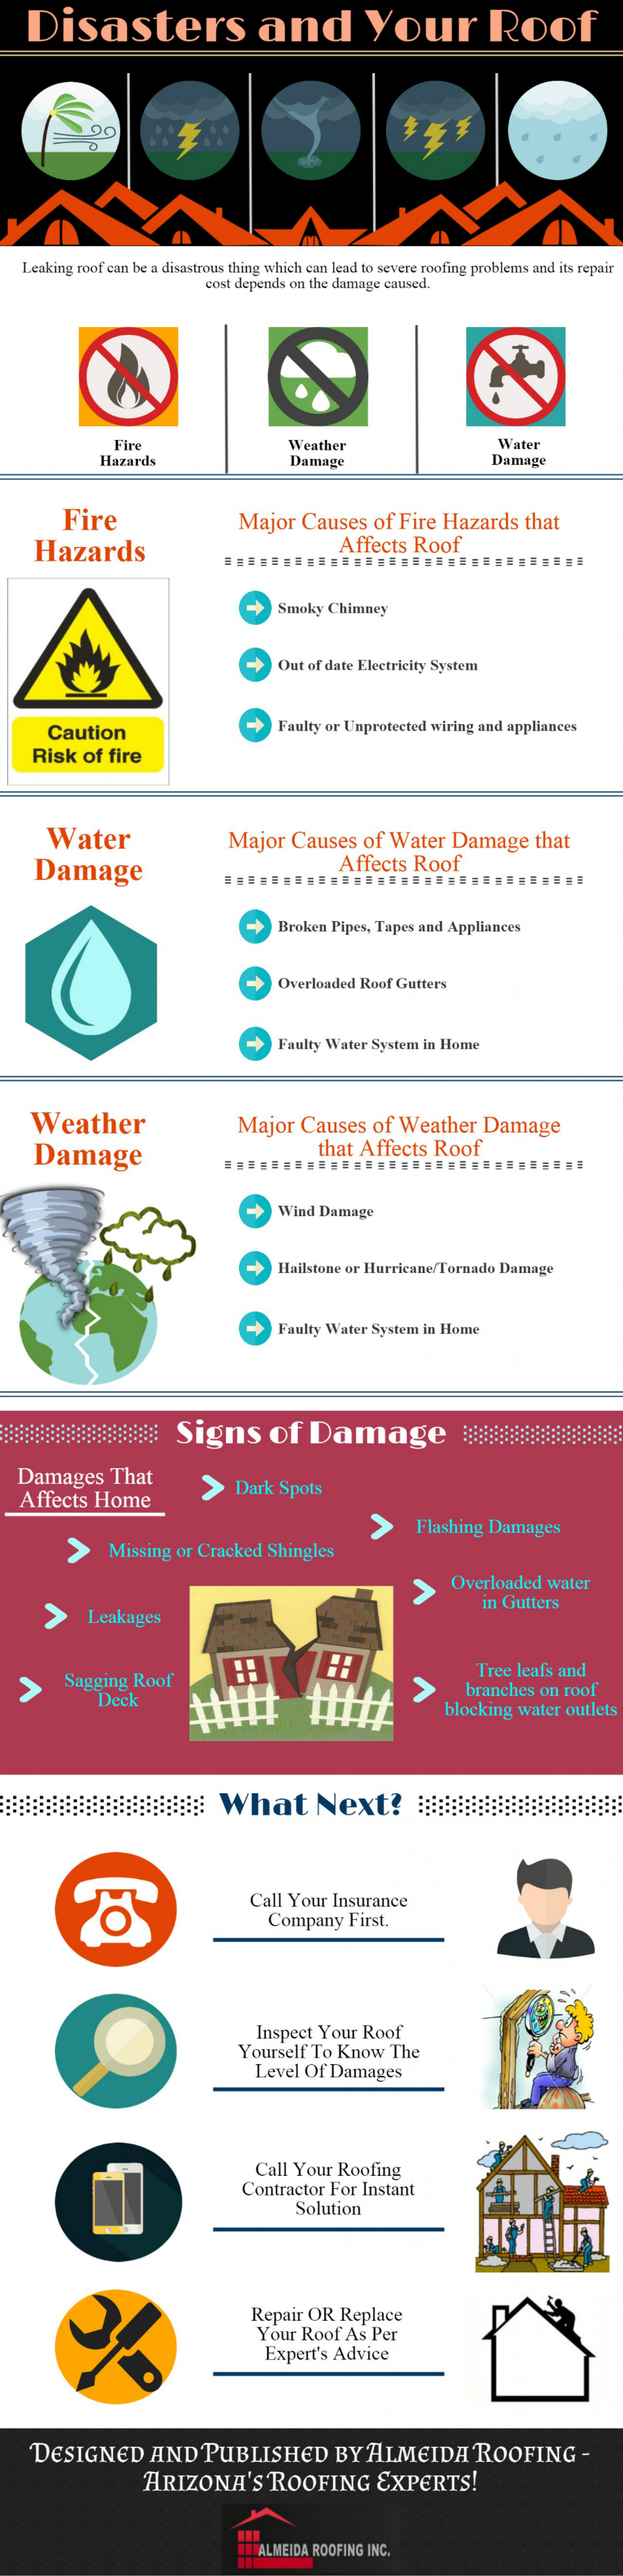 Disasters and Your Roof Infographic